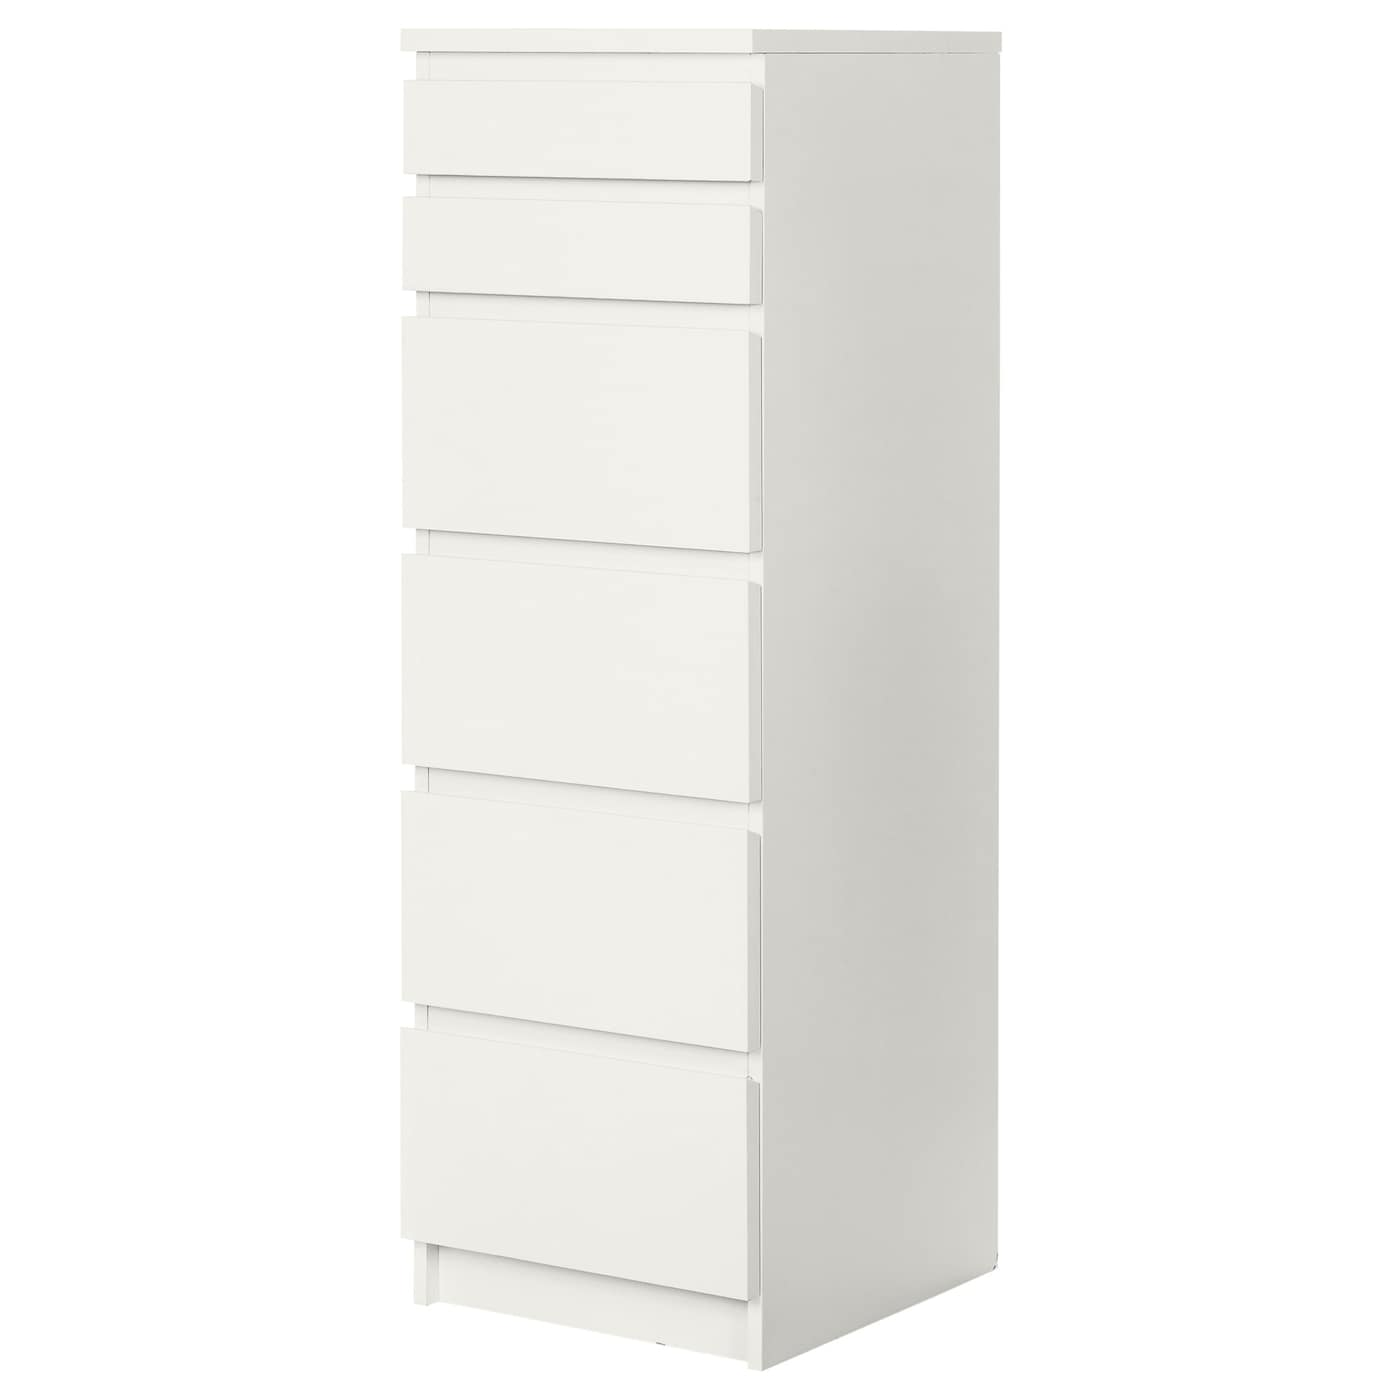 malm chest of 6 drawers white mirror glass 40 x 123 cm ikea. Black Bedroom Furniture Sets. Home Design Ideas